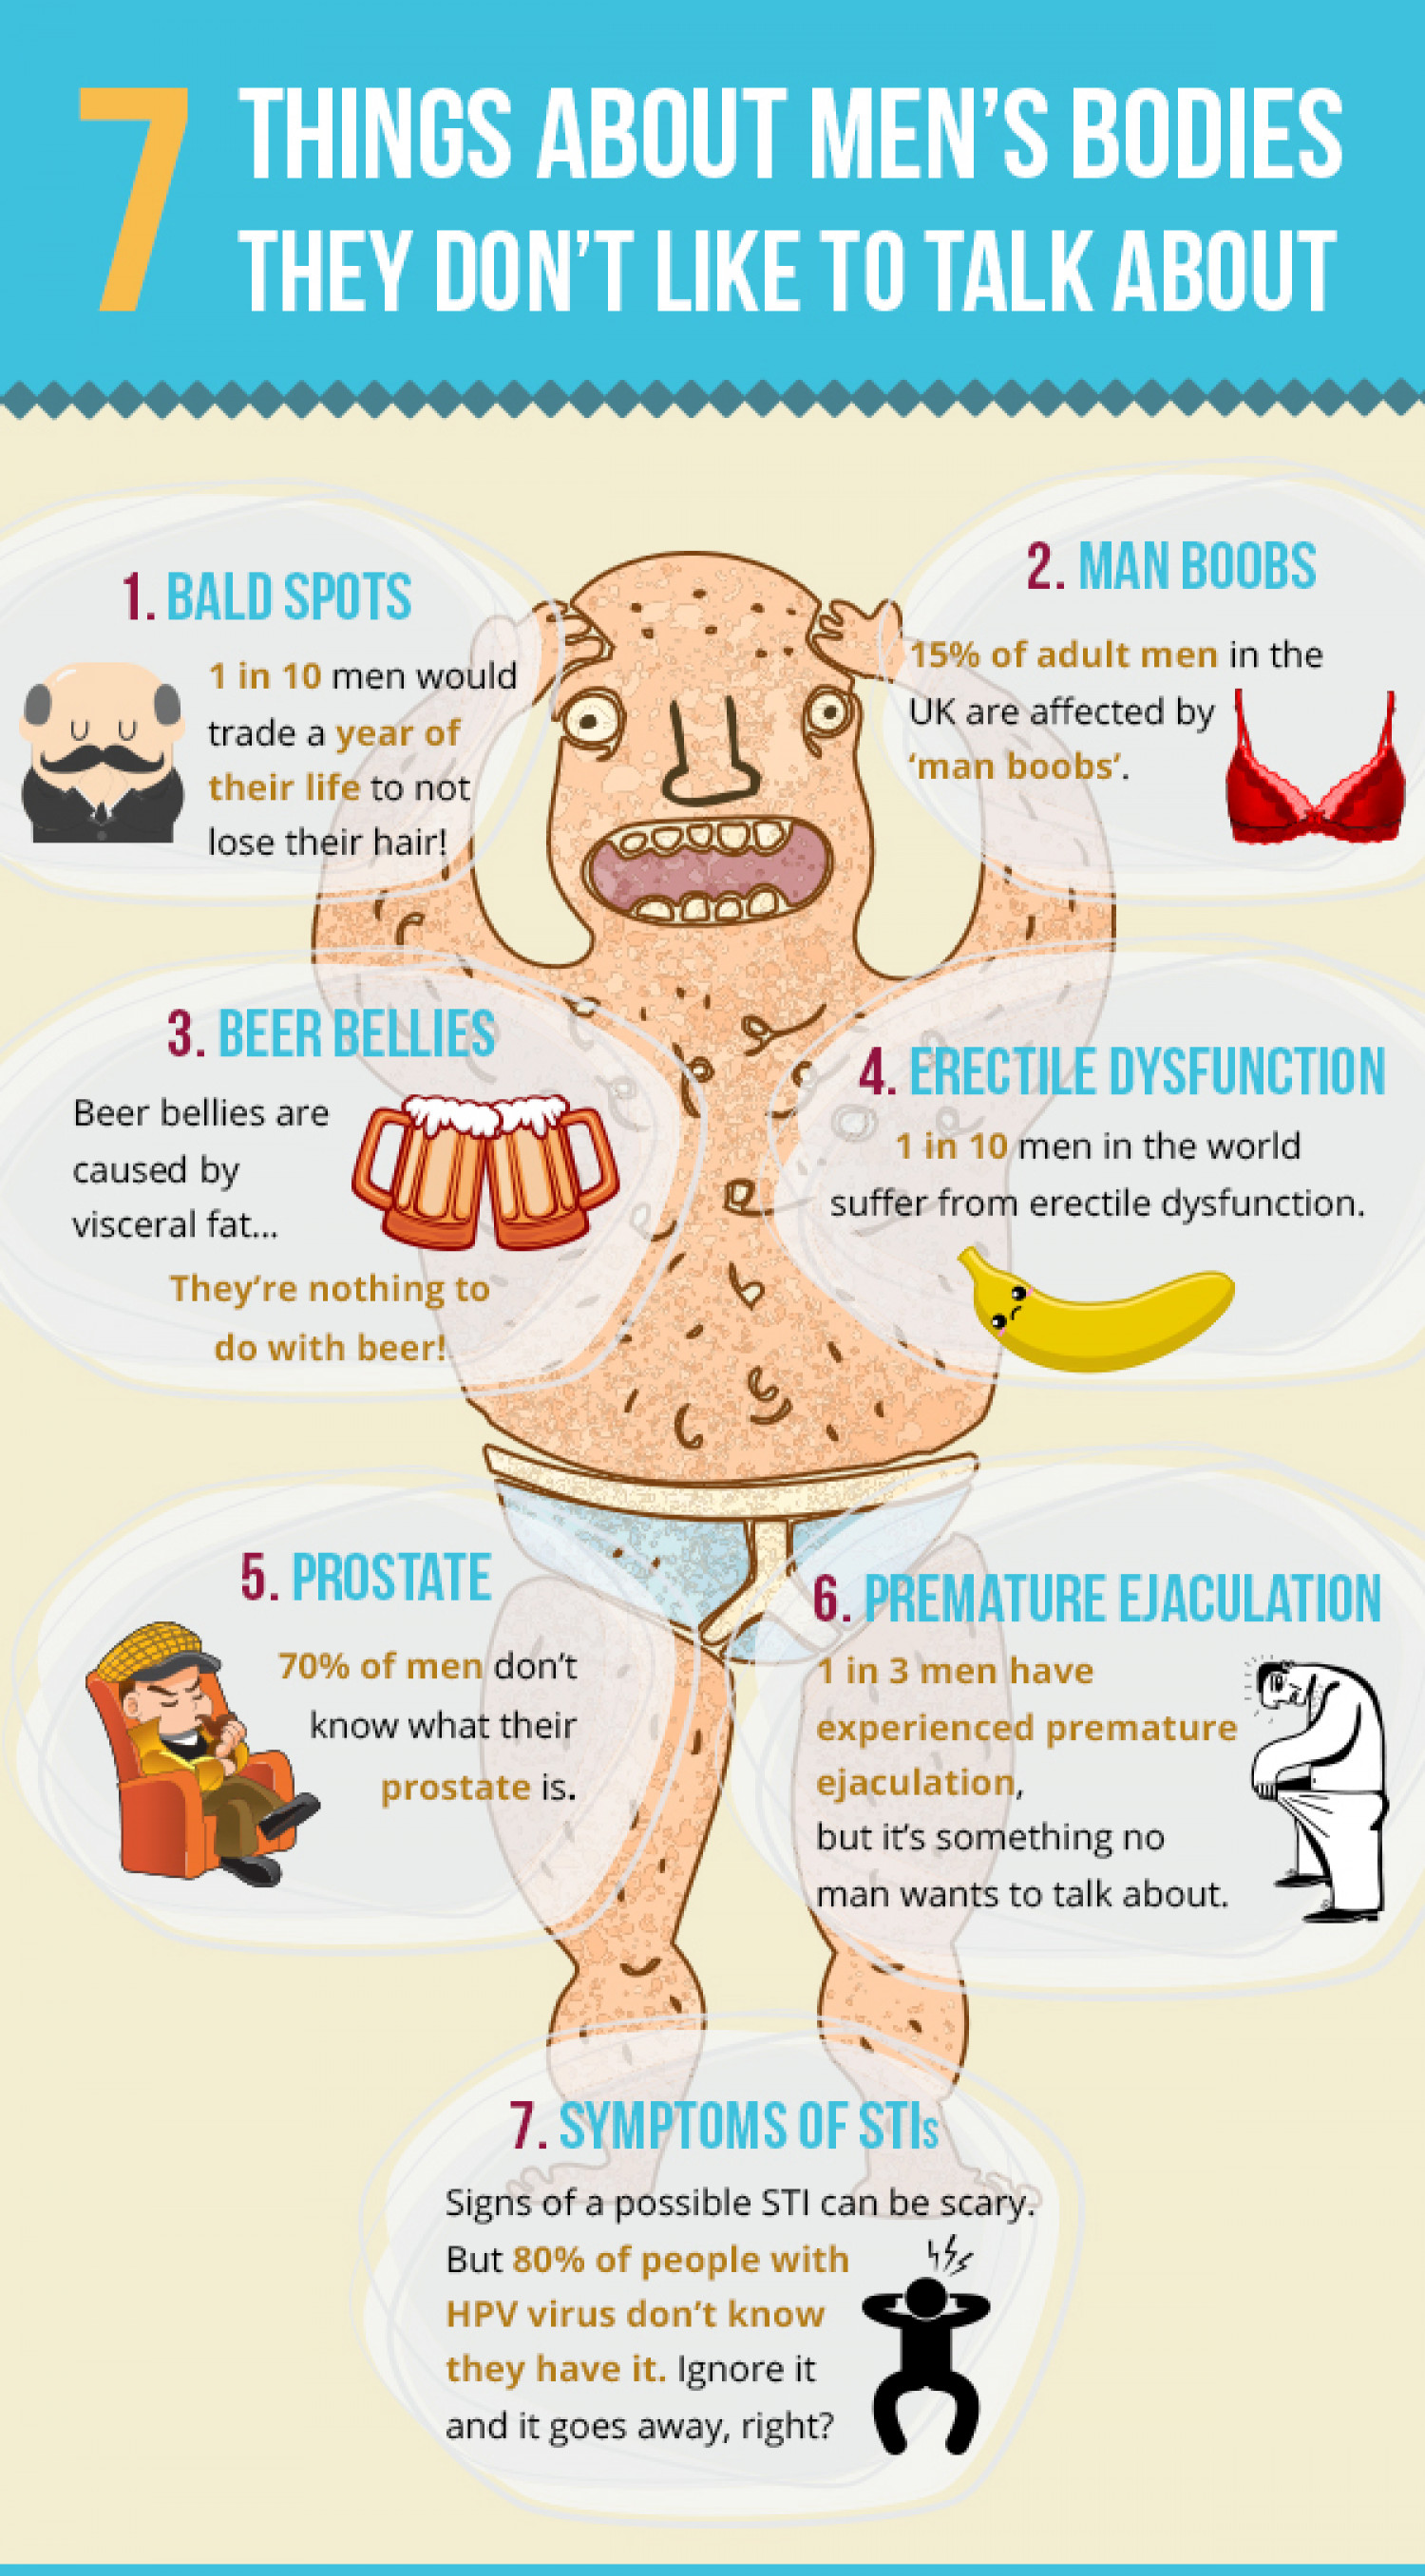 7 things about men's bodies they don't like to talk about Infographic